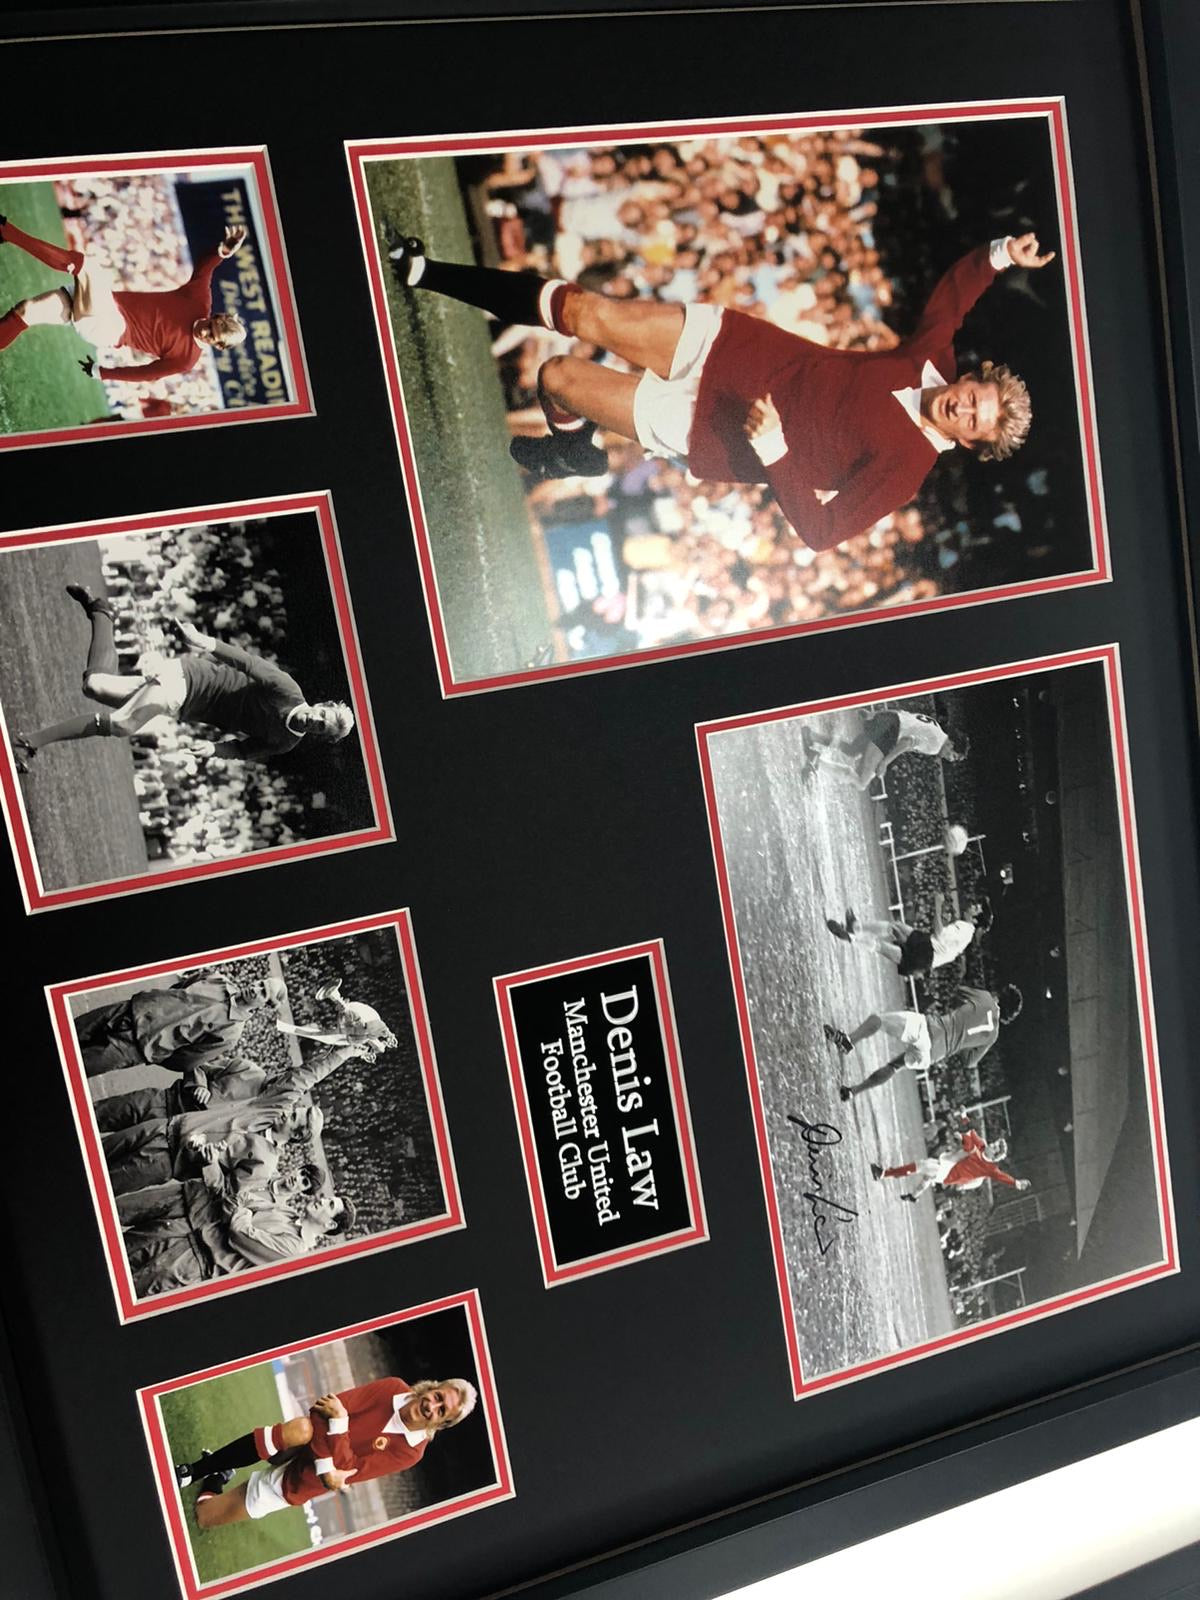 Denis Law - Manchester United Legend - Signed Frame - with COA